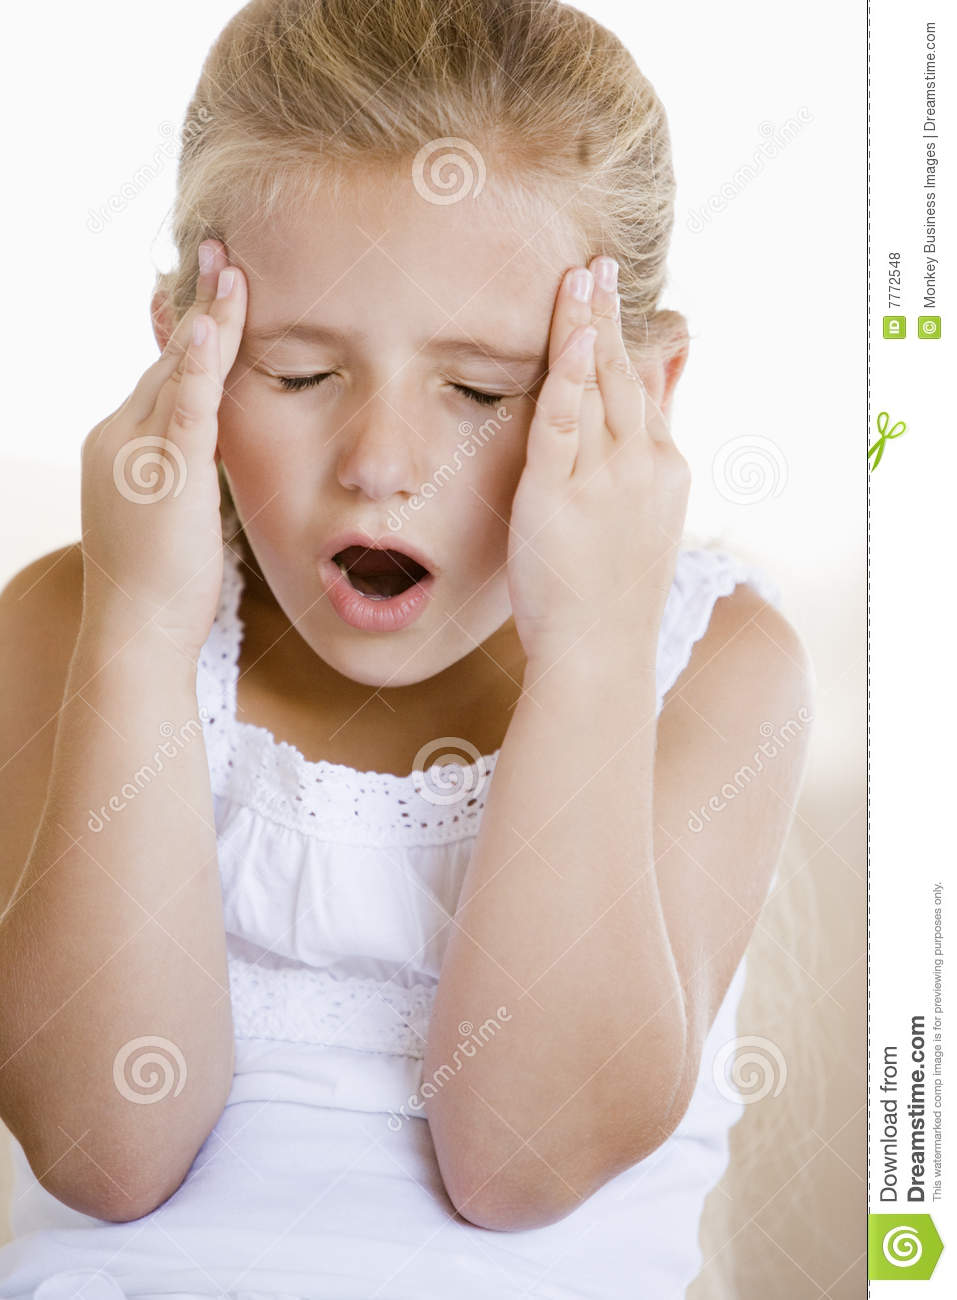 Girl With A Headache Stock Photo Image Of Blond Problems 7772548